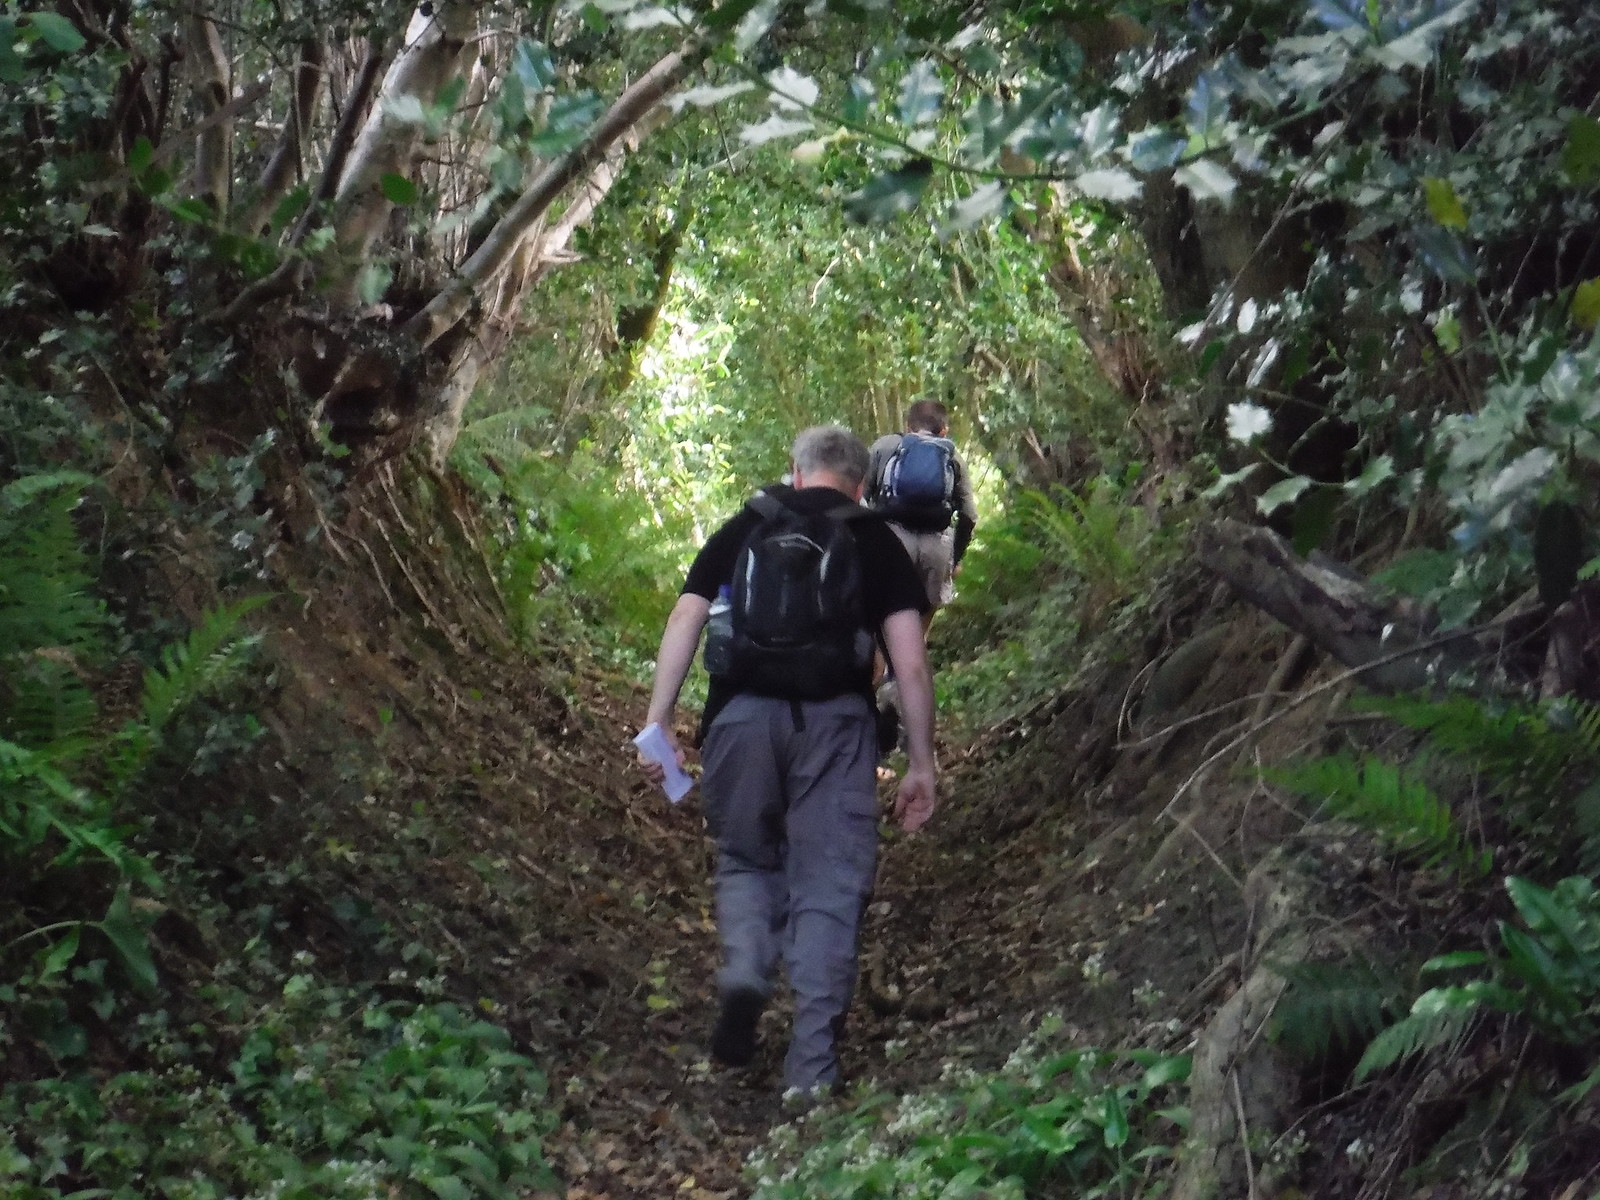 Steep Holloway SWC Walk 249 Tisbury Circular via Dinton and Fovant